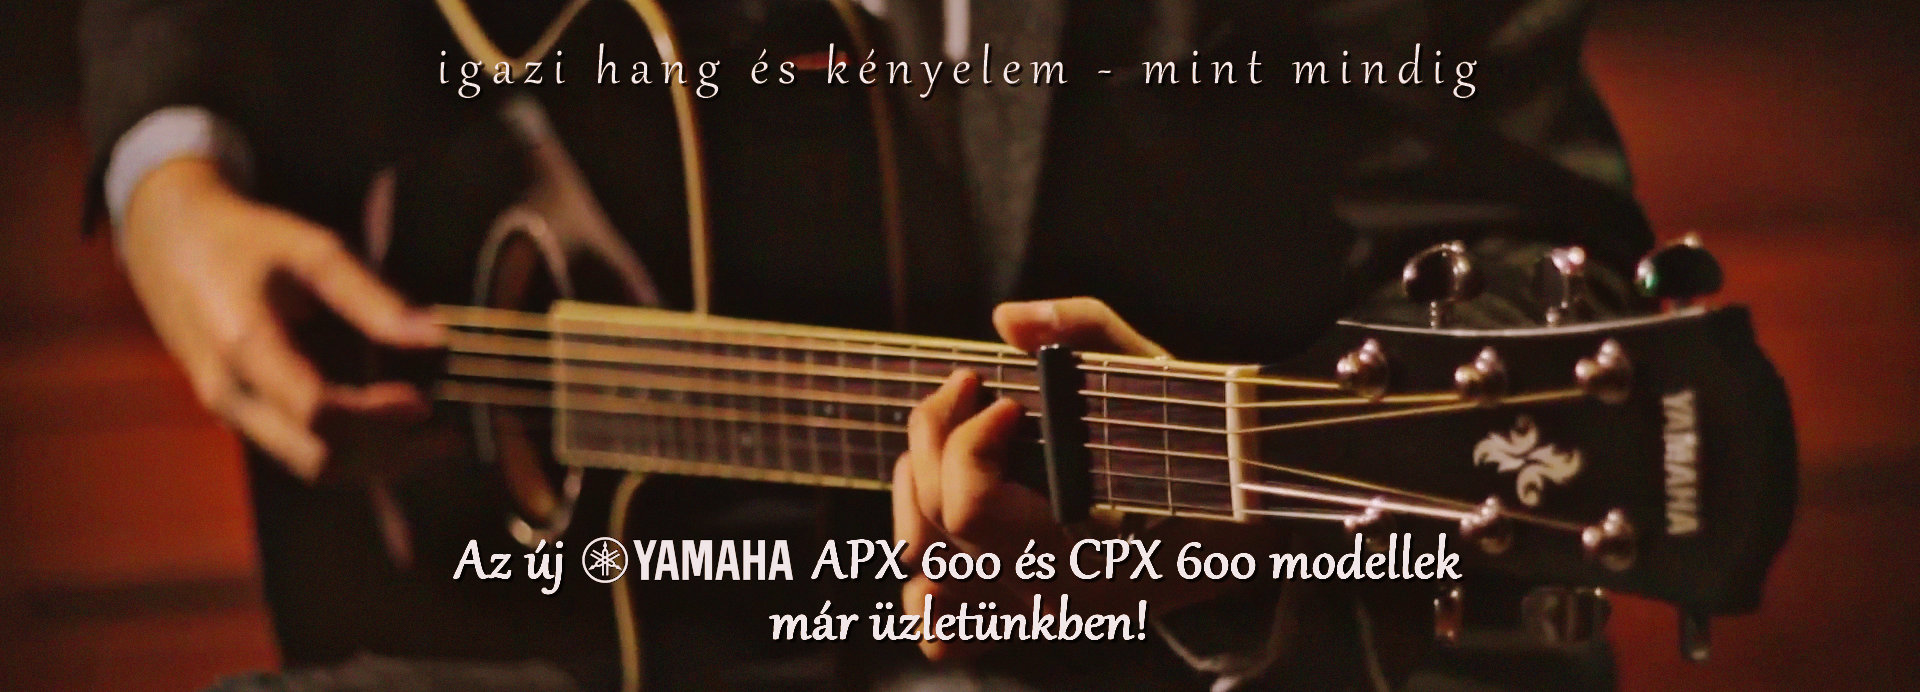 YAMAHA APX, CPX-600